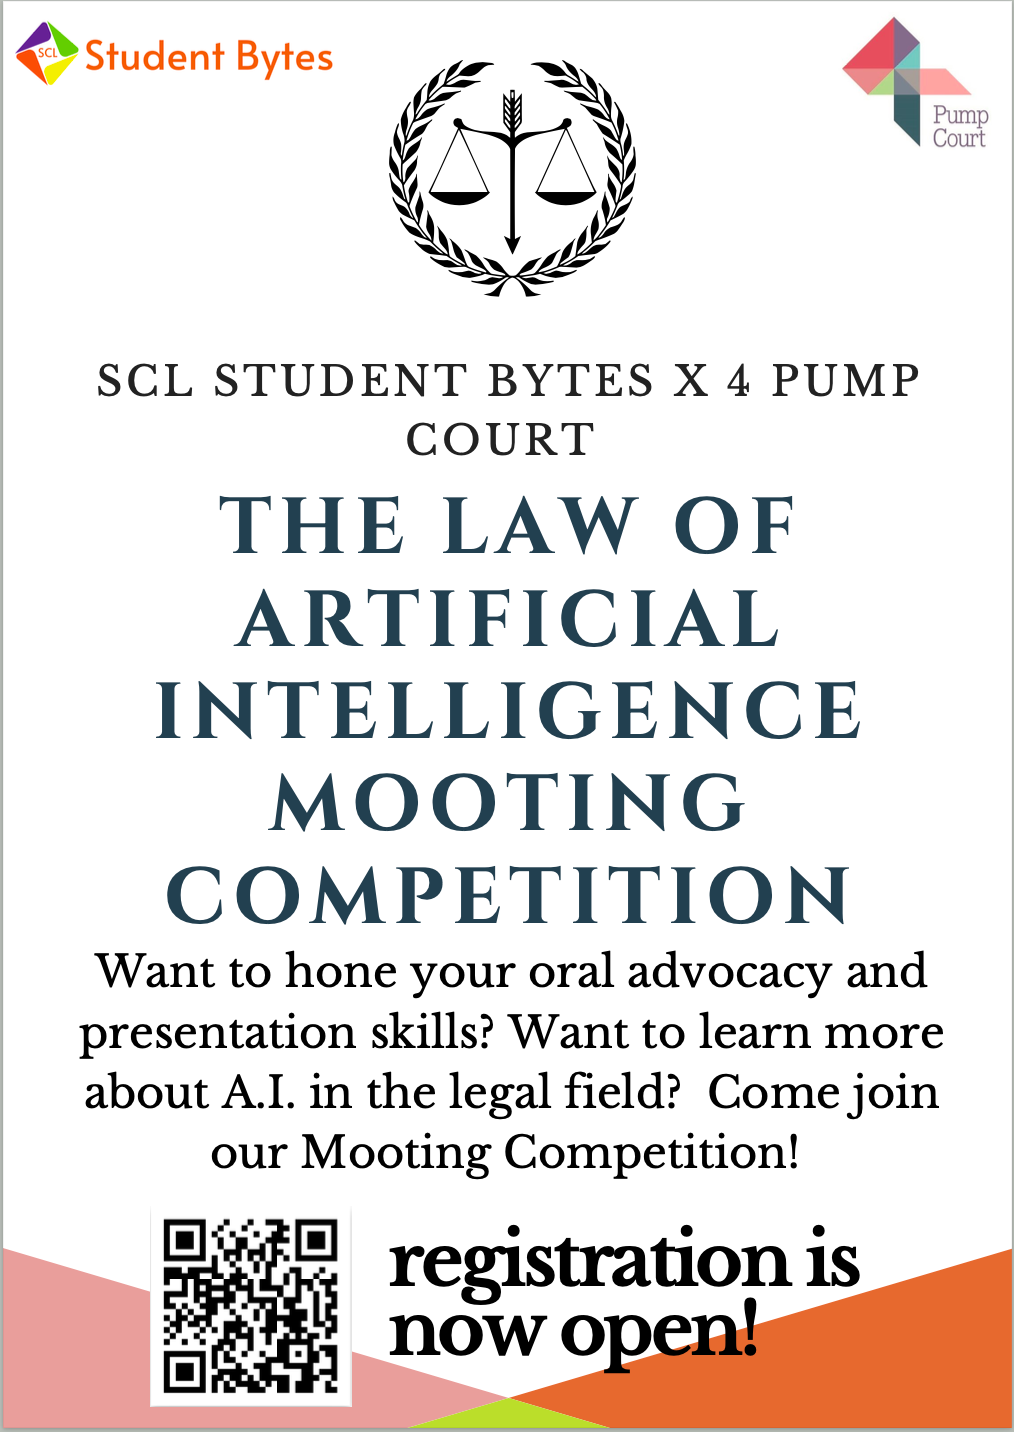 The Law of Artificial Intelligence Mooting Competition